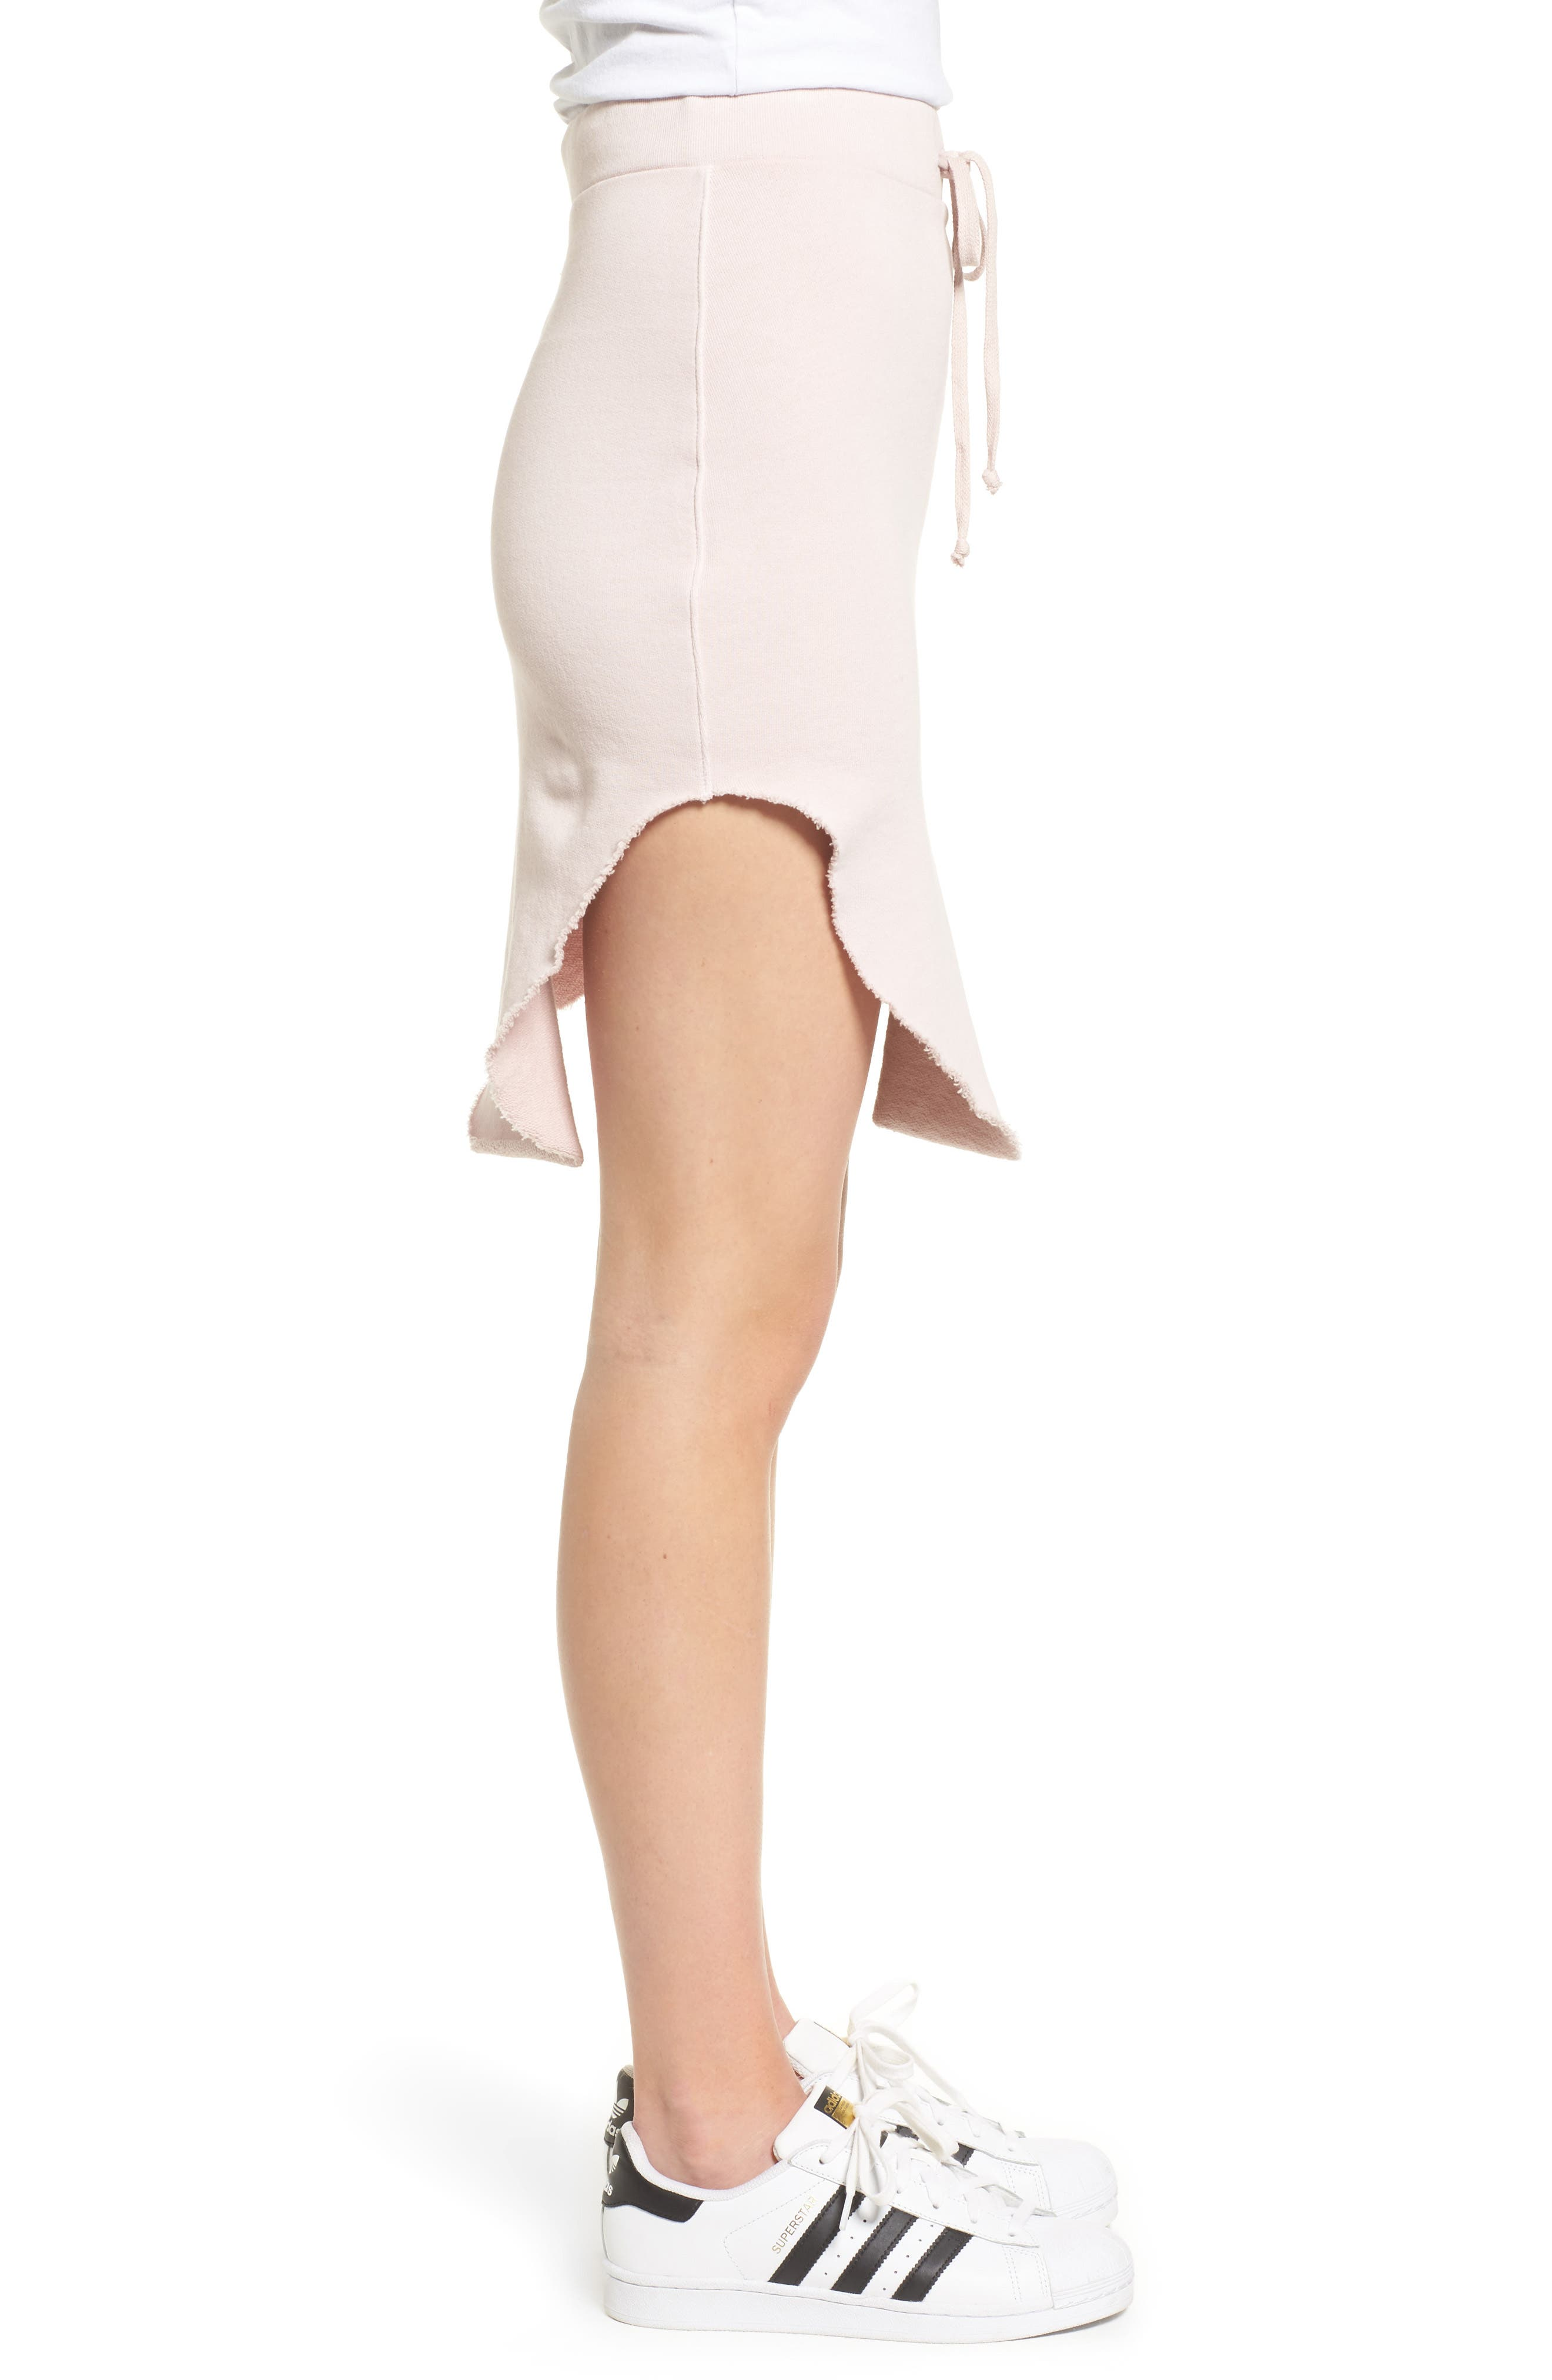 Tee Lab Short Fleece Skirt,                             Alternate thumbnail 3, color,                             Bazooka